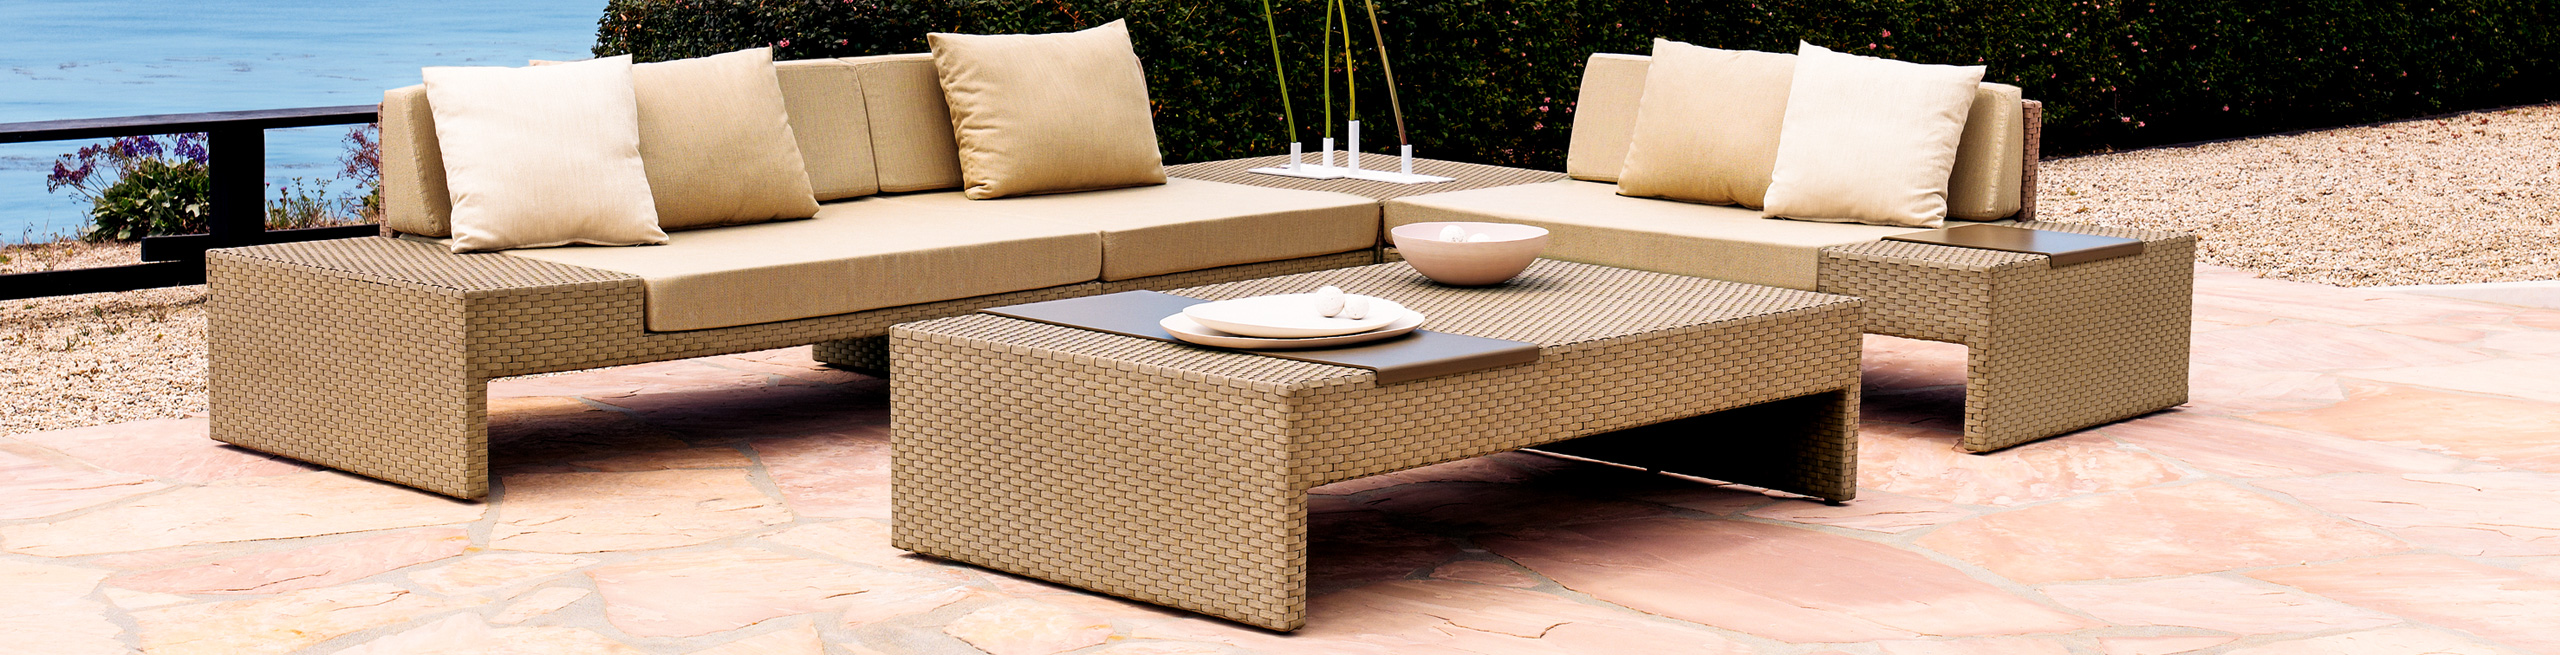 brown jordan patio furniture brown jordan EBFPSHK